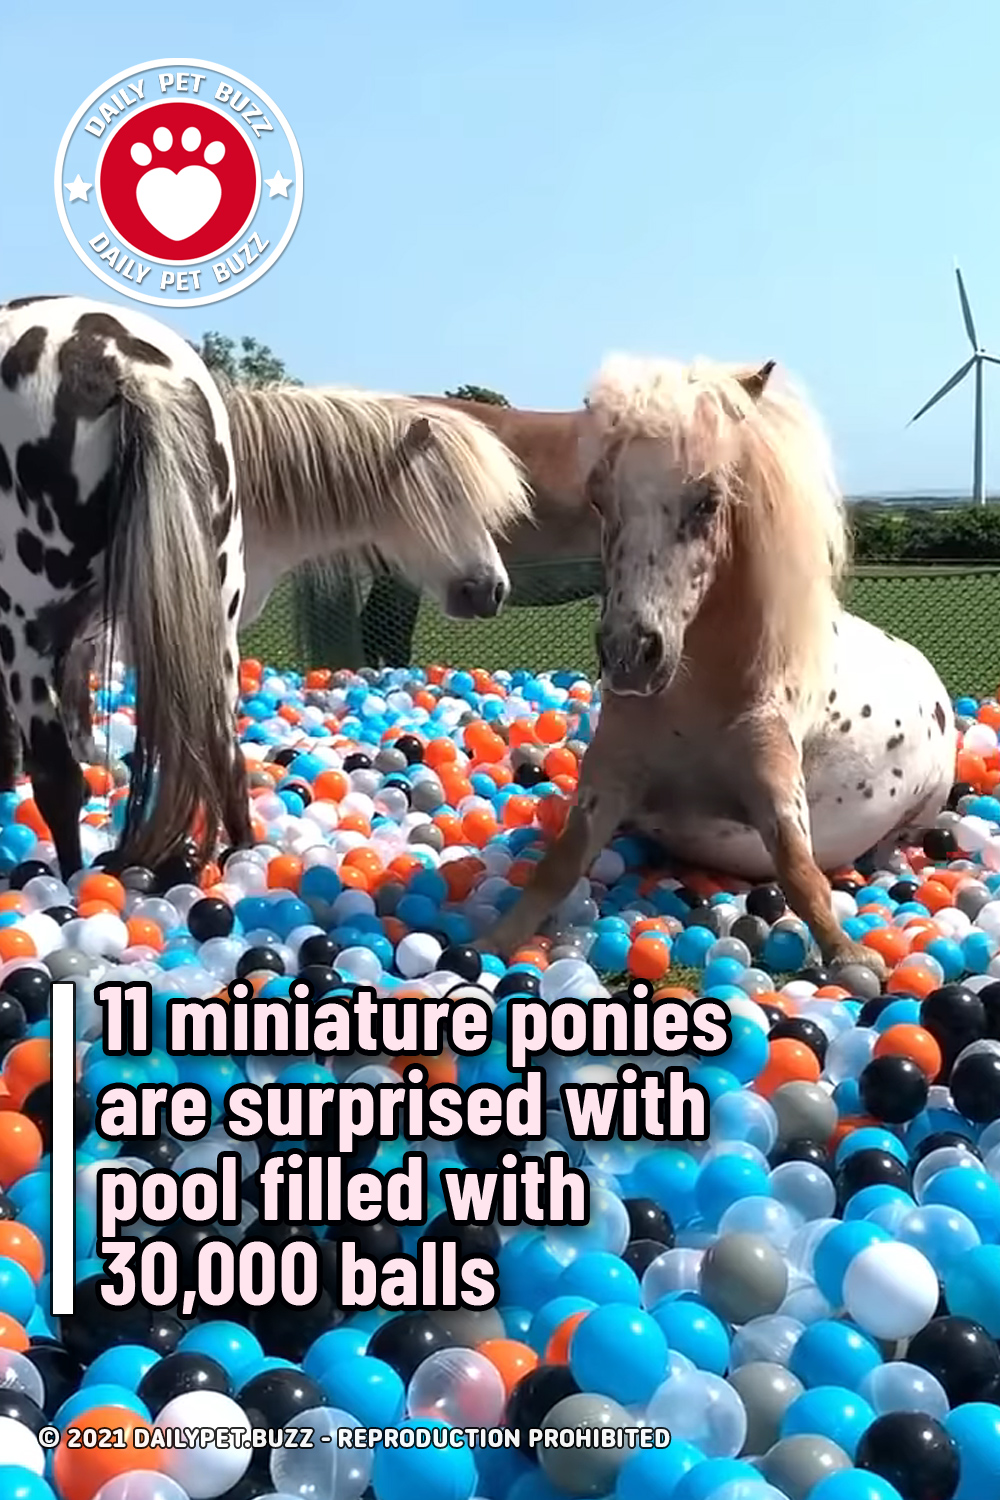 11 miniature ponies are surprised with pool filled with 30,000 balls